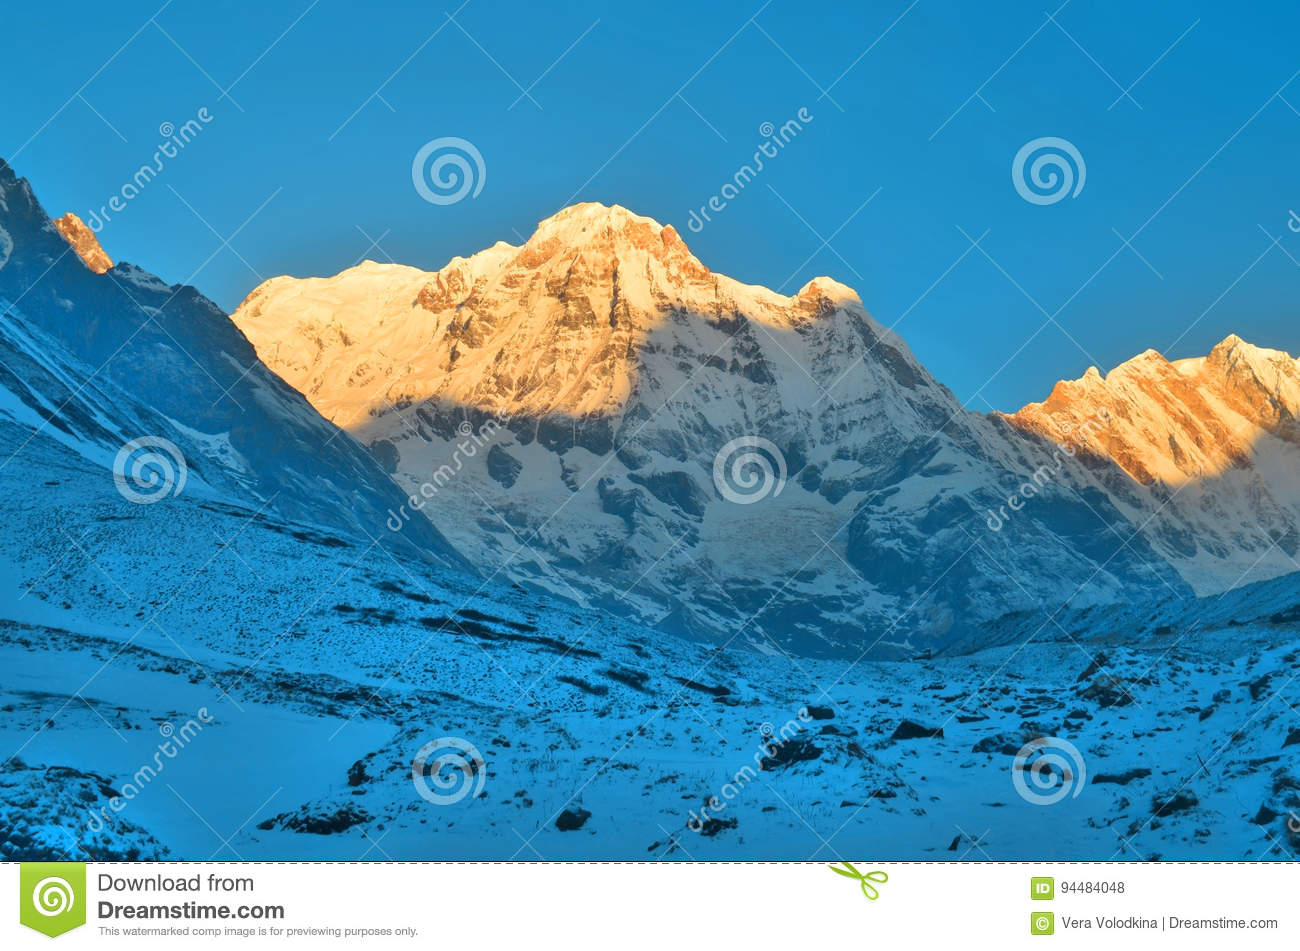 Sunrise in Snowy Mountain Landscape in Himalaya. Sun light. Annapurna South peak, Annapurna Base Camp Track.